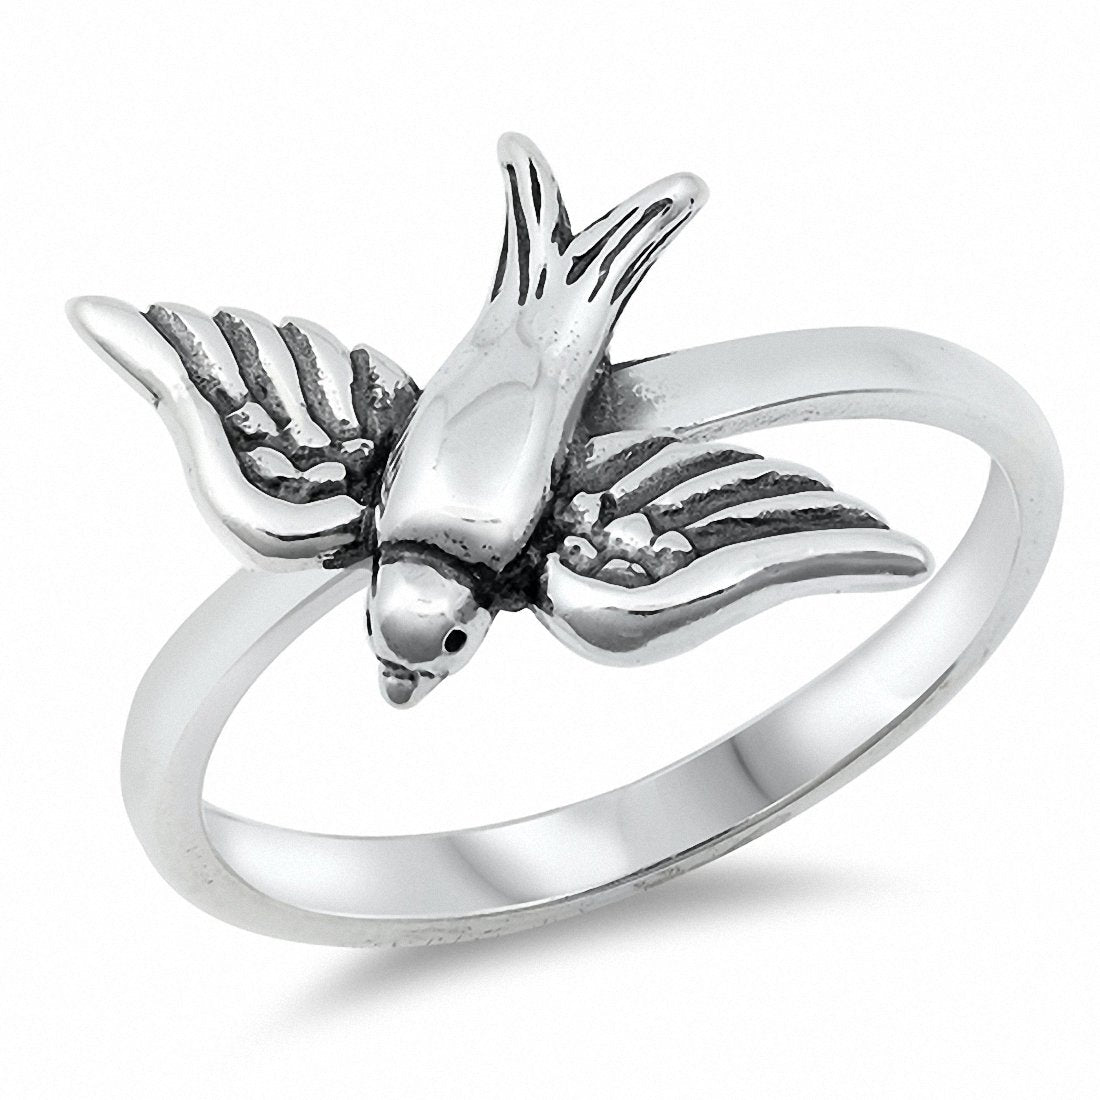 Sparrow Band Ring 925 Sterling Silver Choose Color